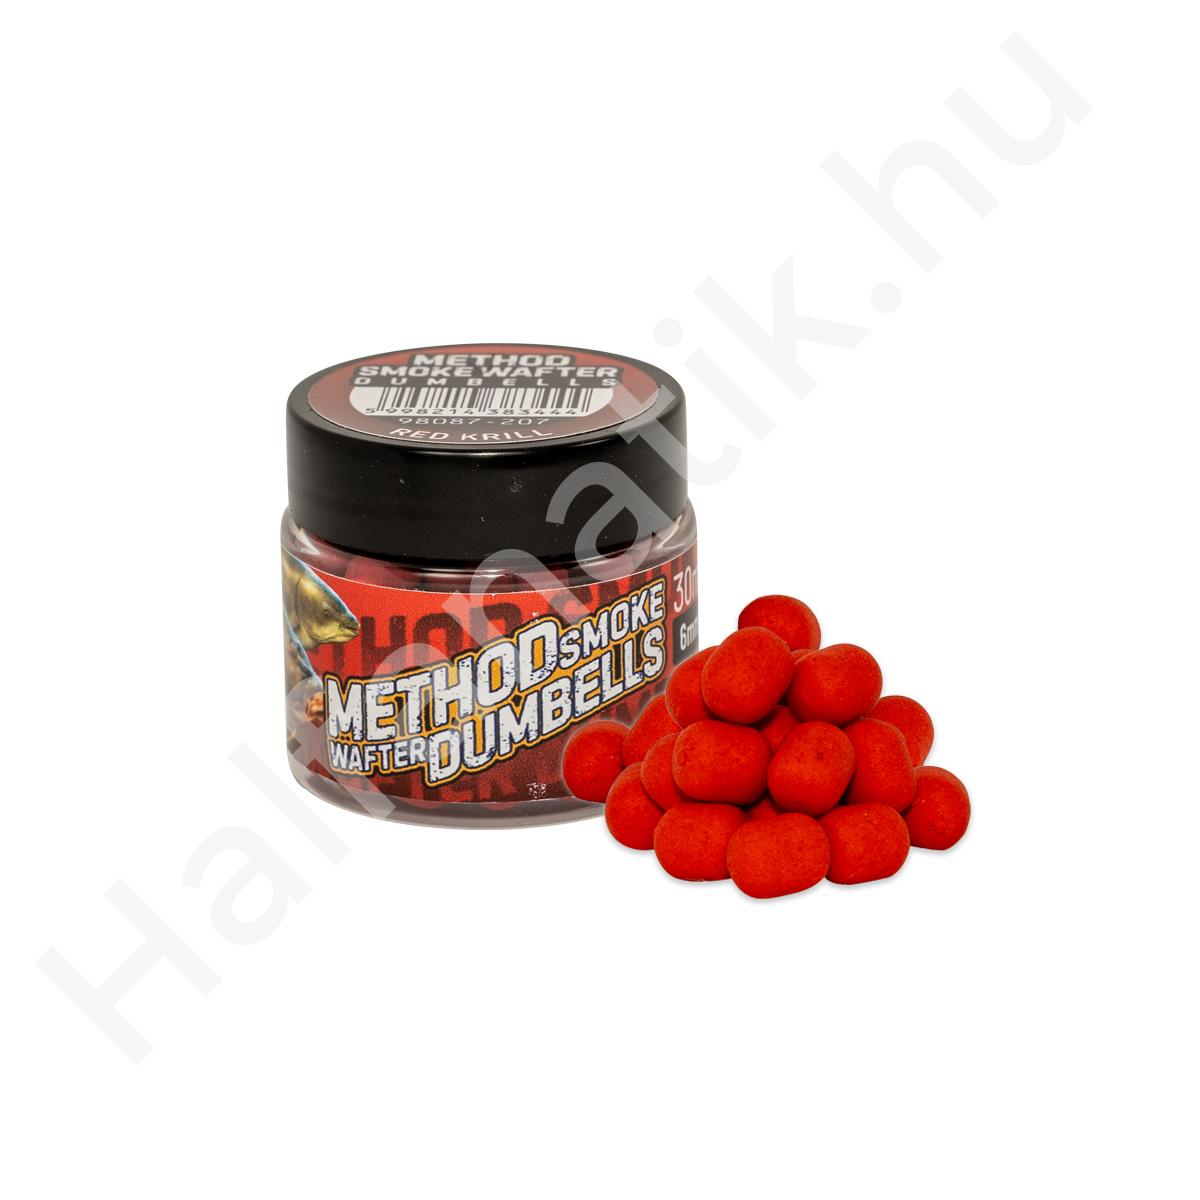 BENZAR MIX METHOD SMOKE VOROS KRILL WAFTER DUMBELLS 6MM